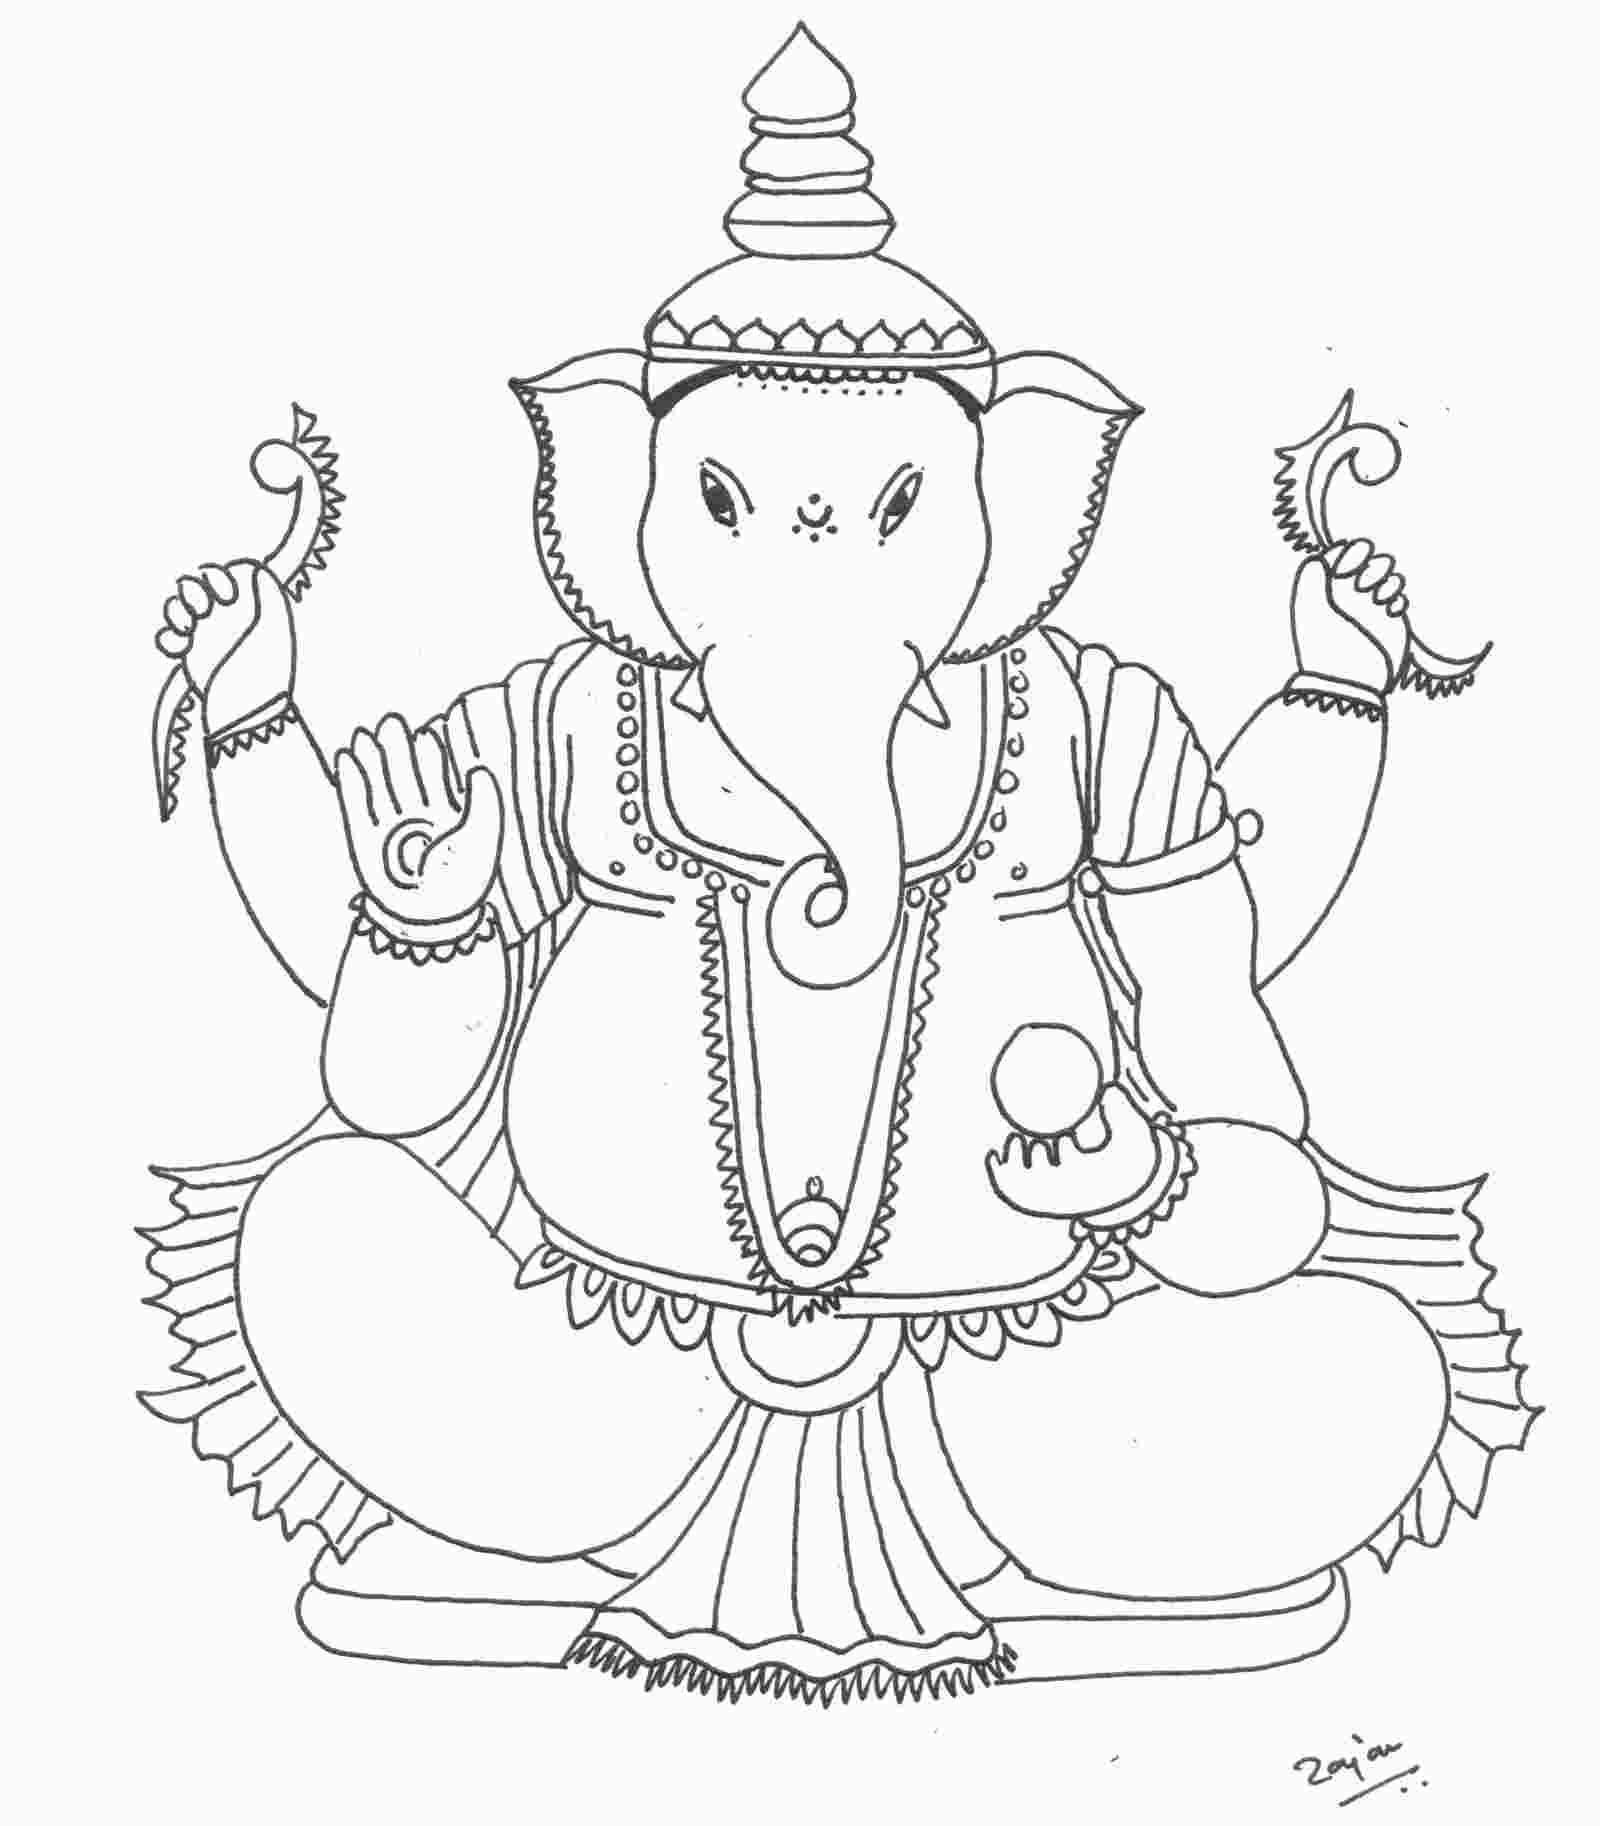 Ganesh Colouring In Sheet Cartoon Coloring Pages Coloring Pages